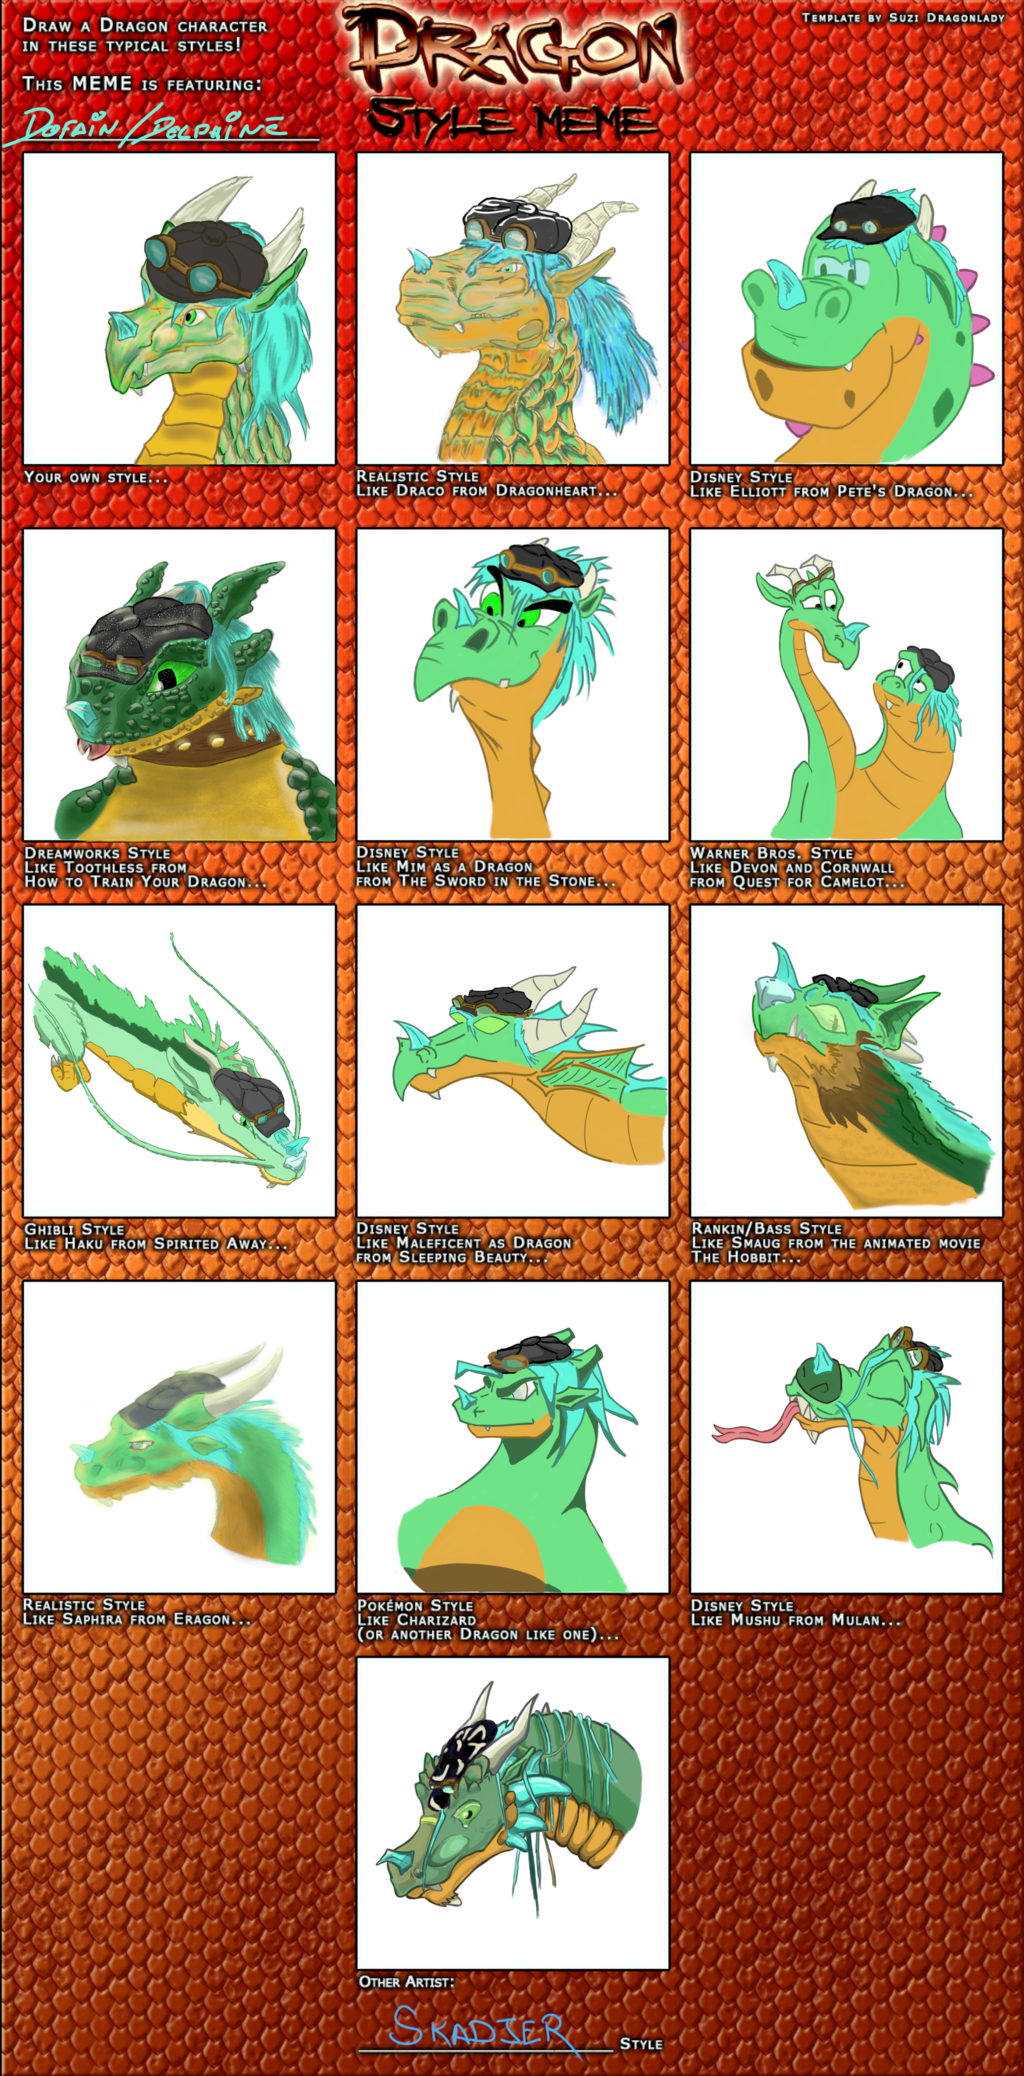 Most recent image: Dragon Style Meme Colored